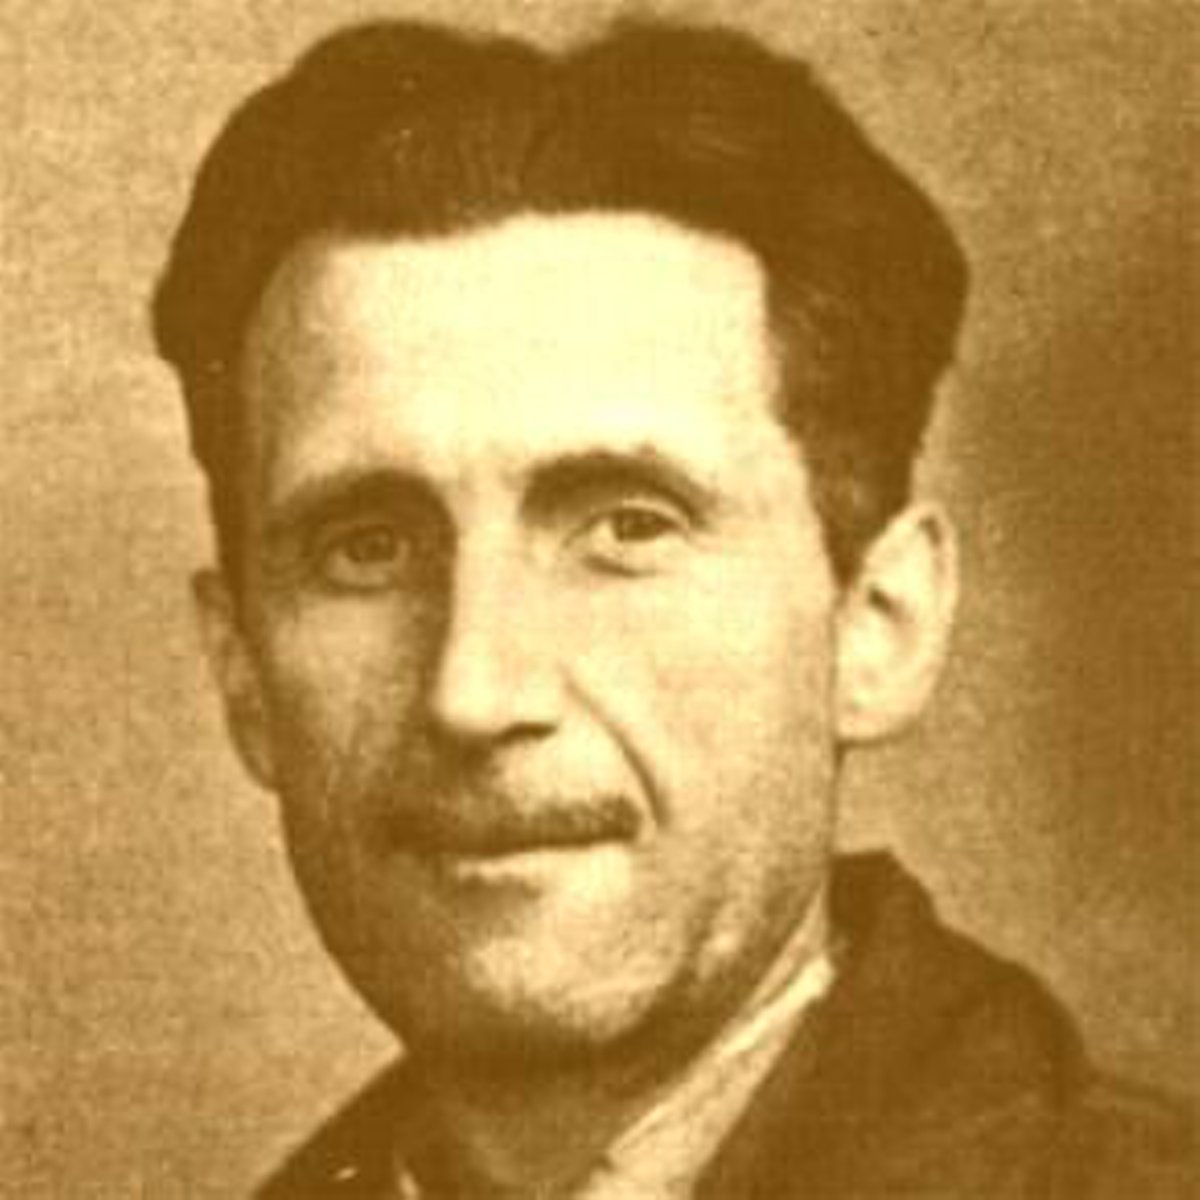 an analysis of totalitarianism in animal farm by george orwell Animal farm reverts to the old manor farm in both name and reality no doubt this is what george orwell thinks has happened in russia but if he wants to tell us why it happened, he has failed.